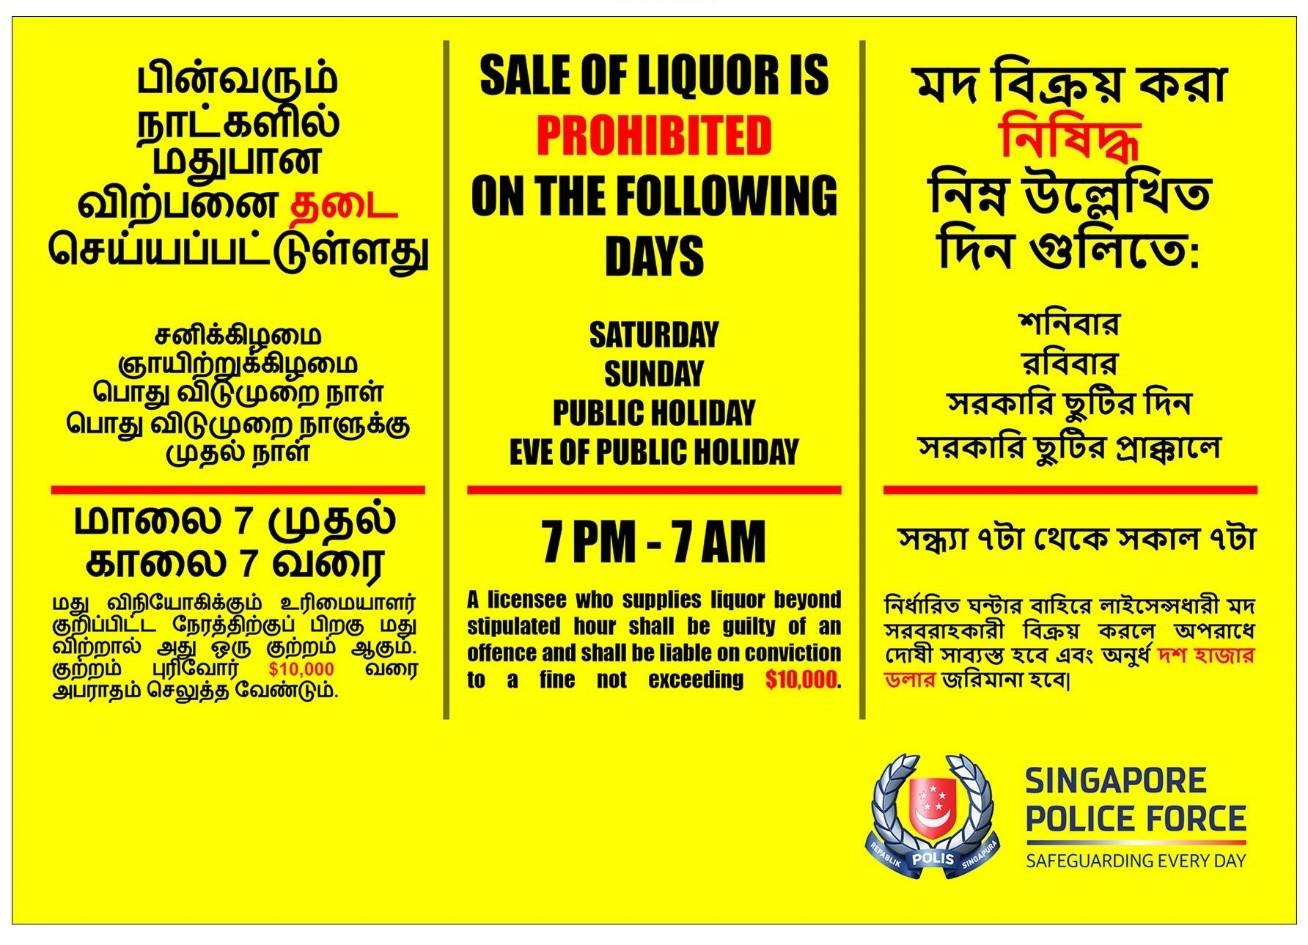 Advisory stickers issued by Singapore Police remind owners and members of the public that the sale of liquor is prohibited during restricted hours. Photo courtesy: Singapore Police